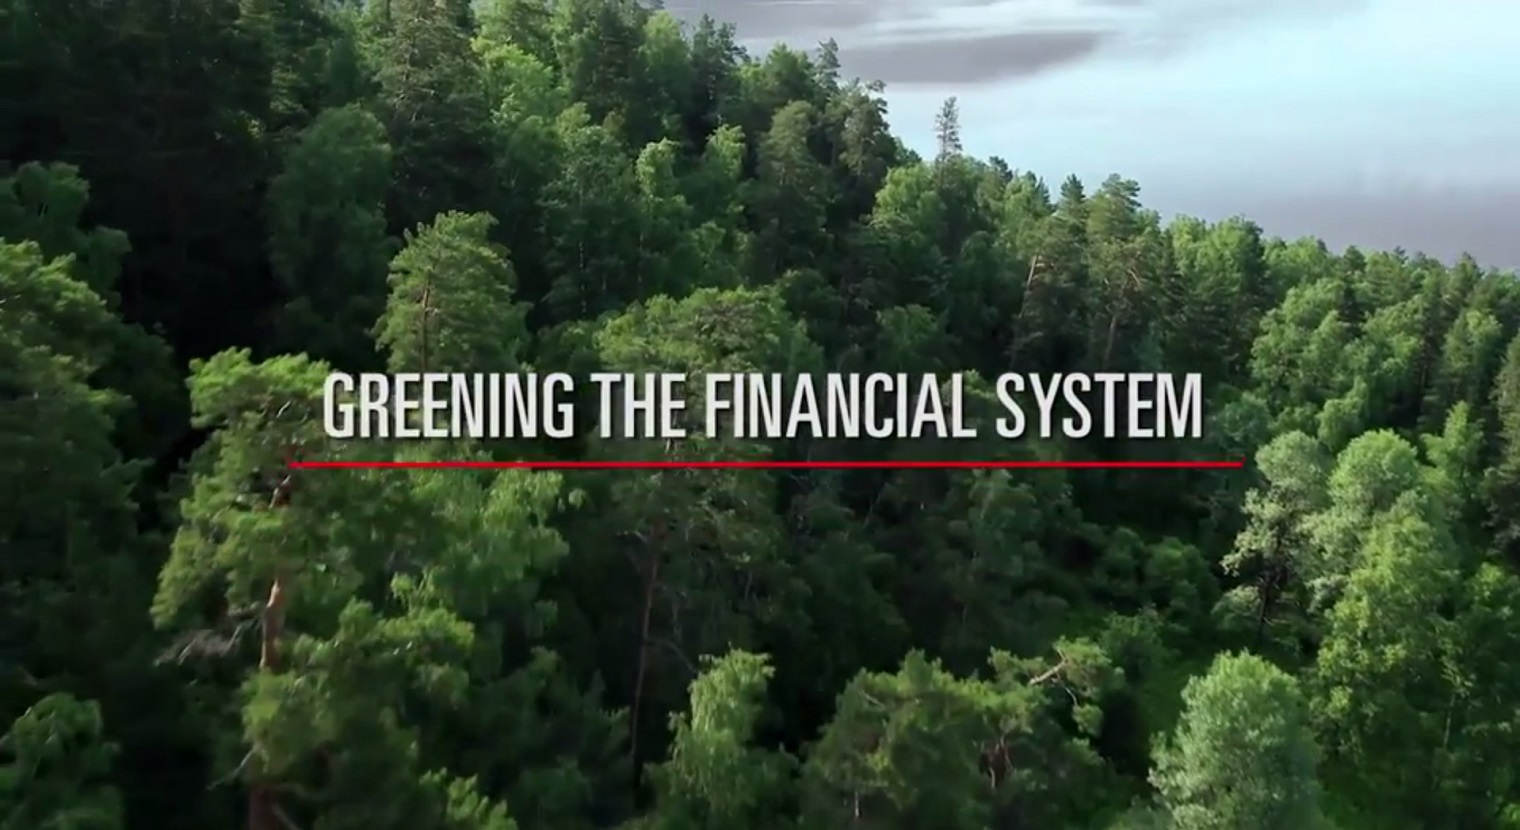 Global financial system becomes greener